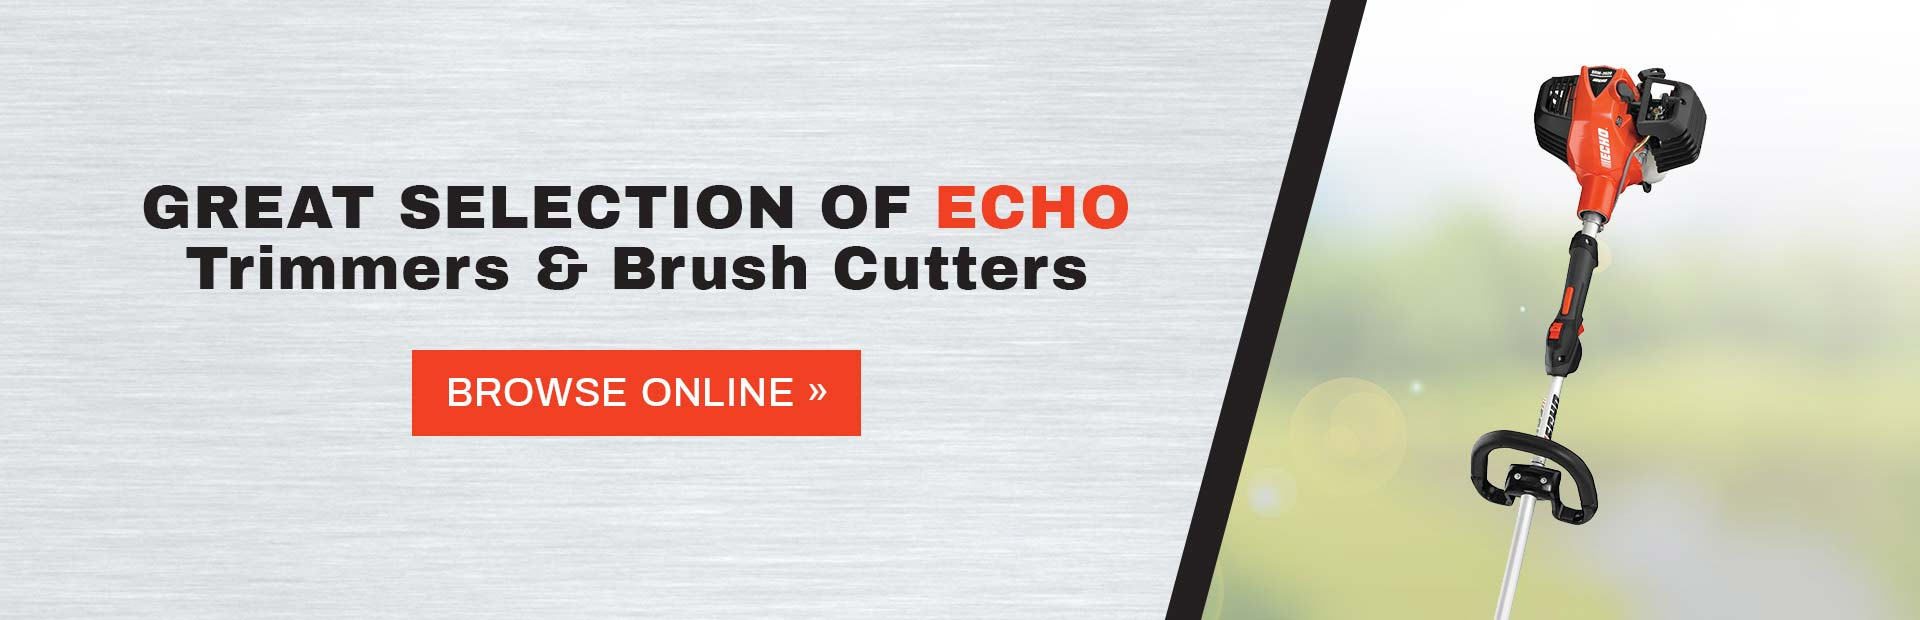 Click here to view our great selection of ECHO trimmers and brush cutters!